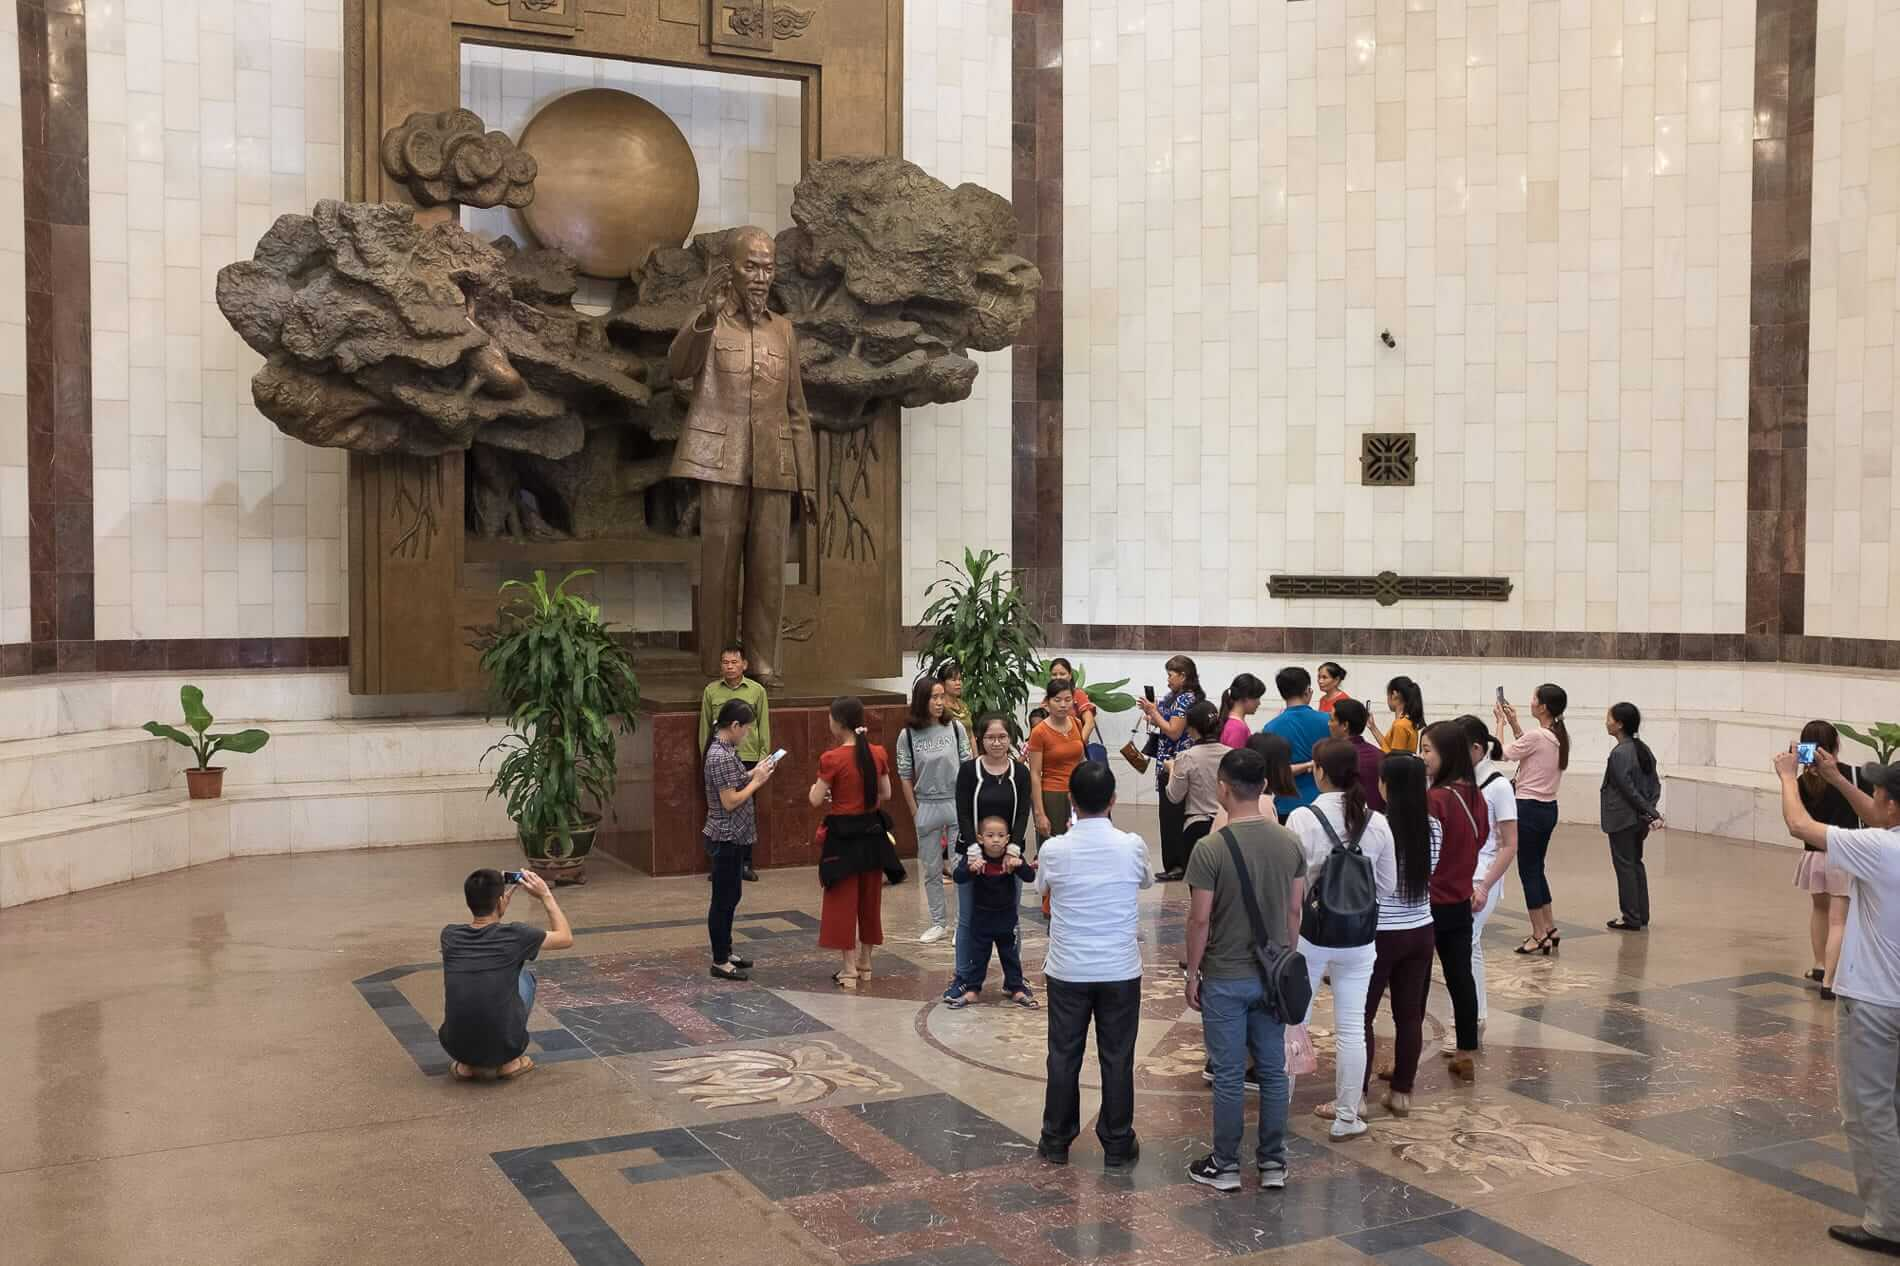 The Ho Chi Minh museum packed with tourists